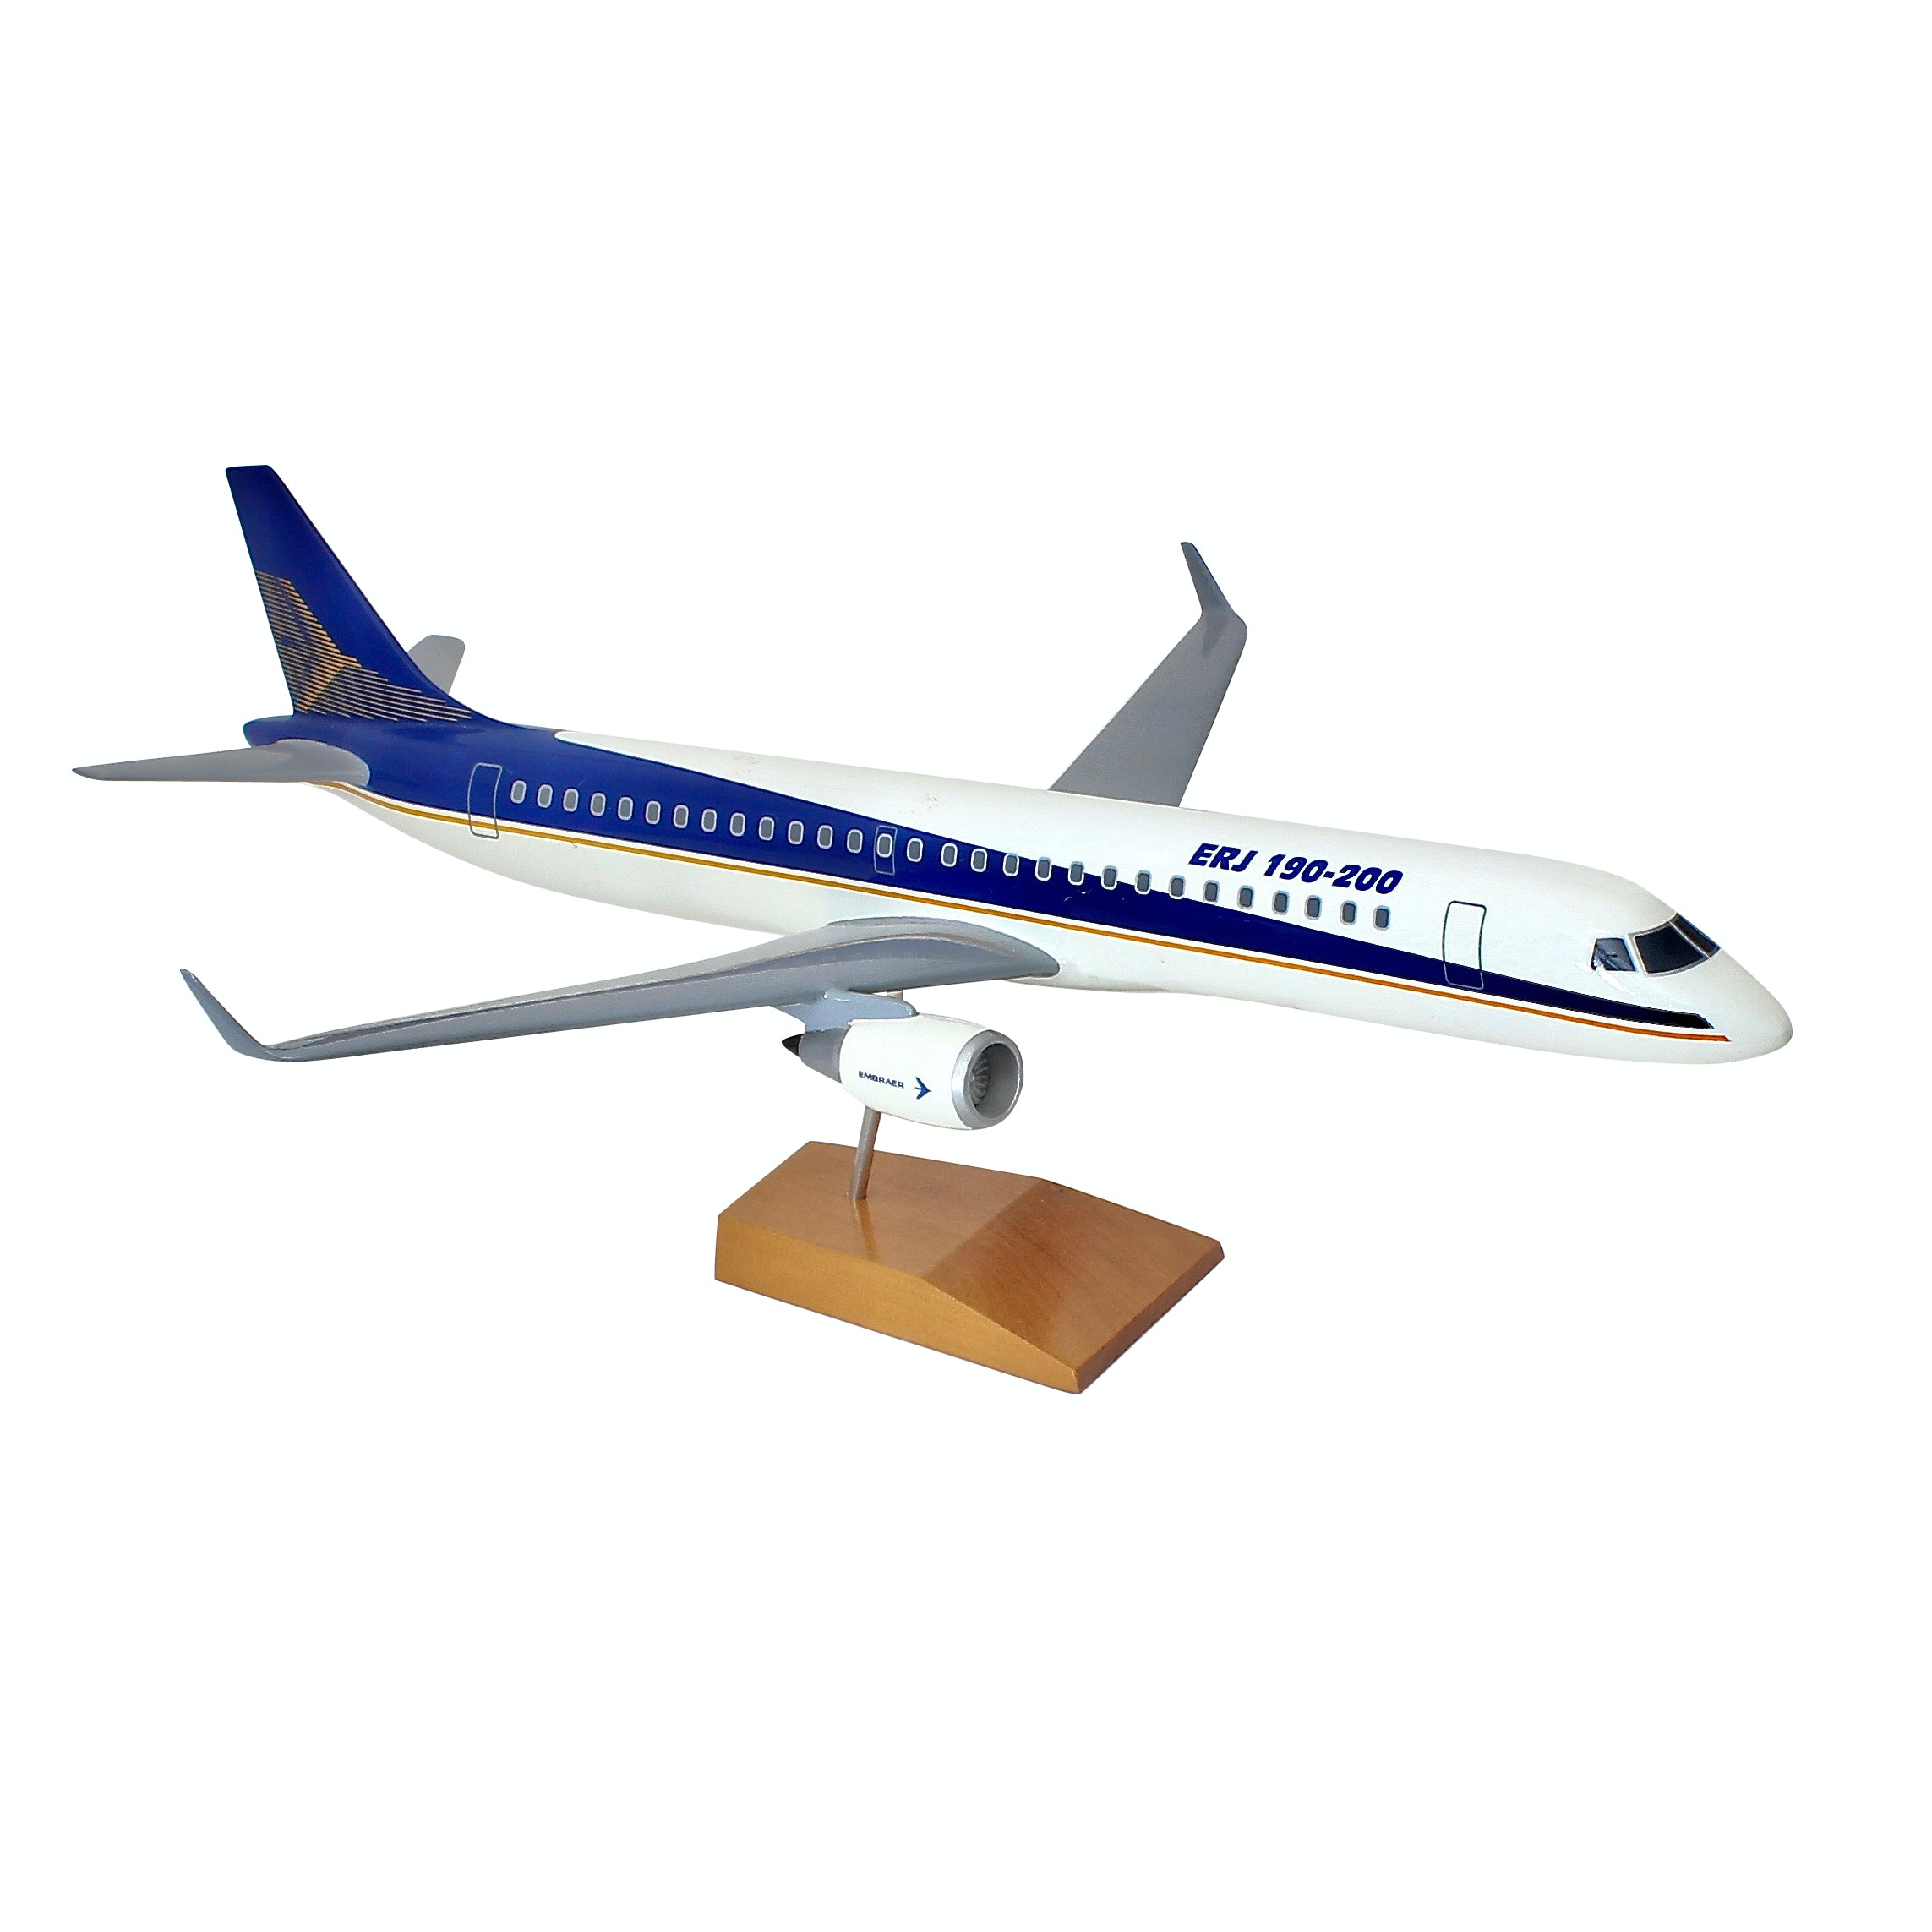 Embraer ERJ 190-200 Replica Model